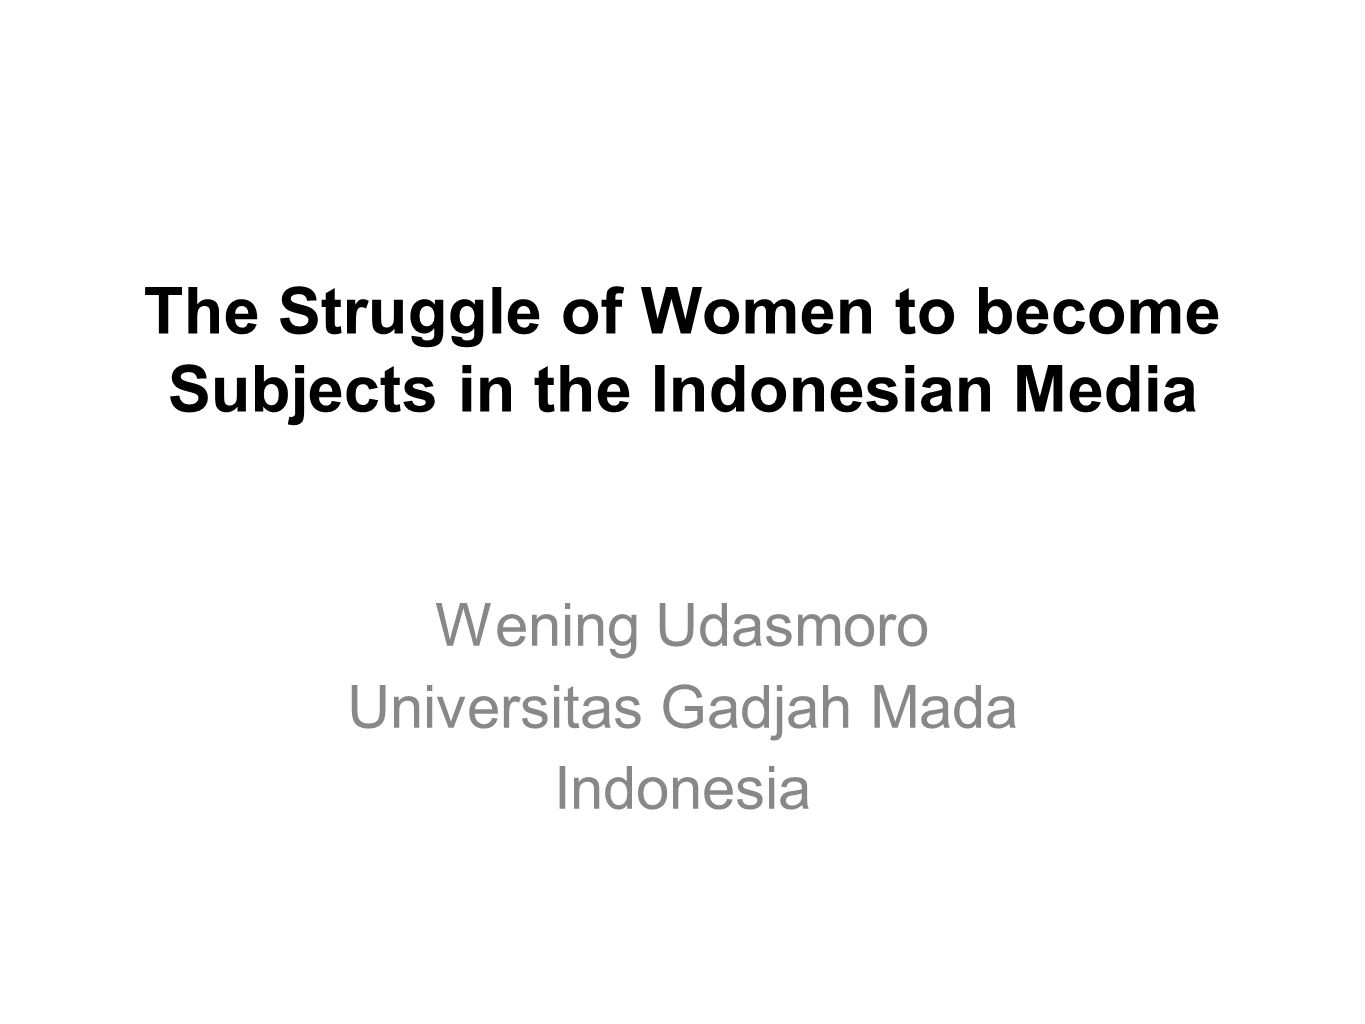 The Struggle of Women to become Subjects in the Indonesian Media Wening Udasmoro Universitas Gadjah Mada Indonesia